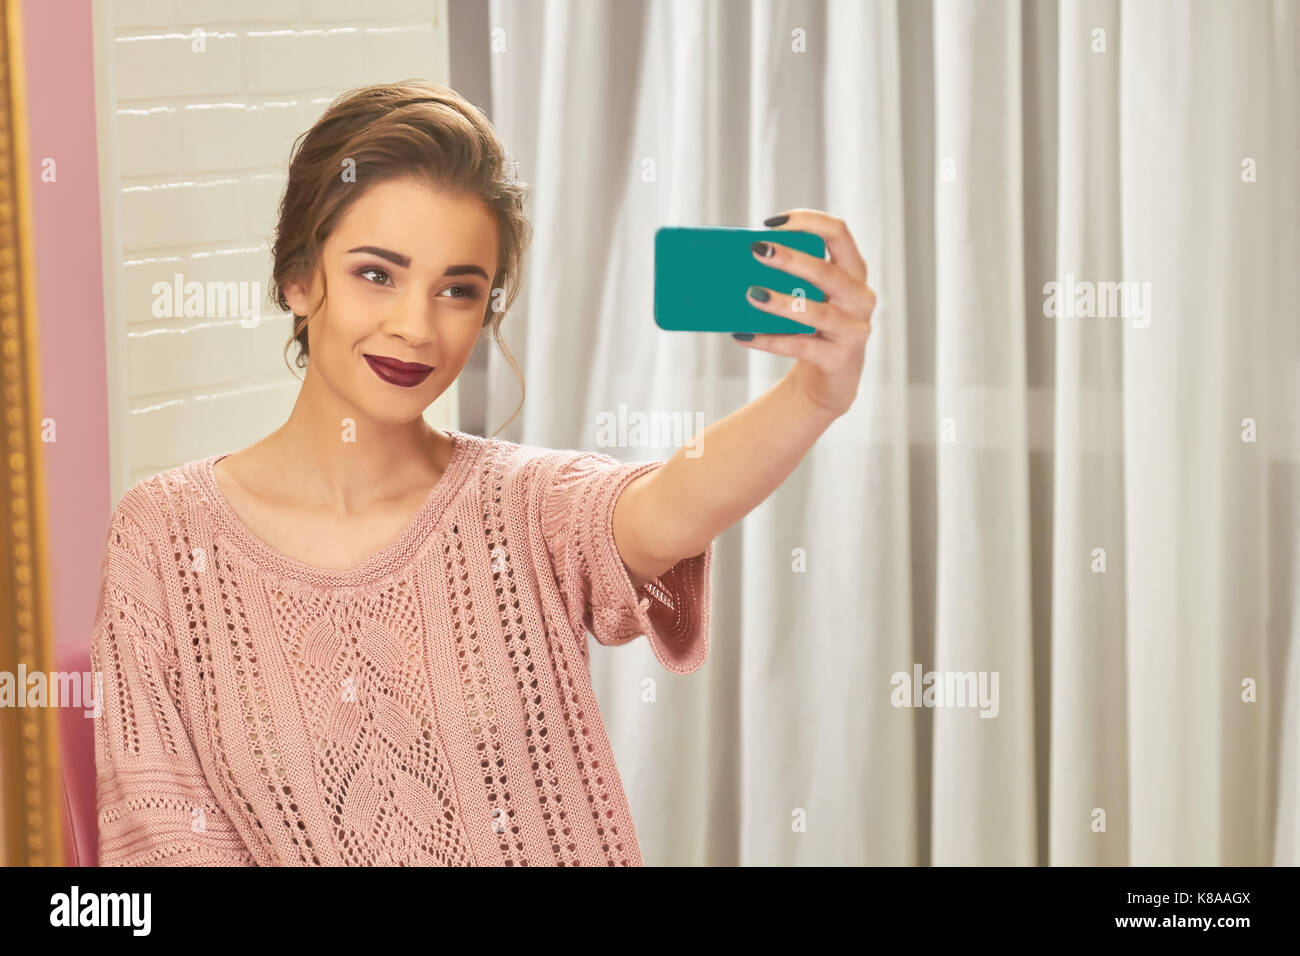 Woman smiling and taking selfie. - Stock Image